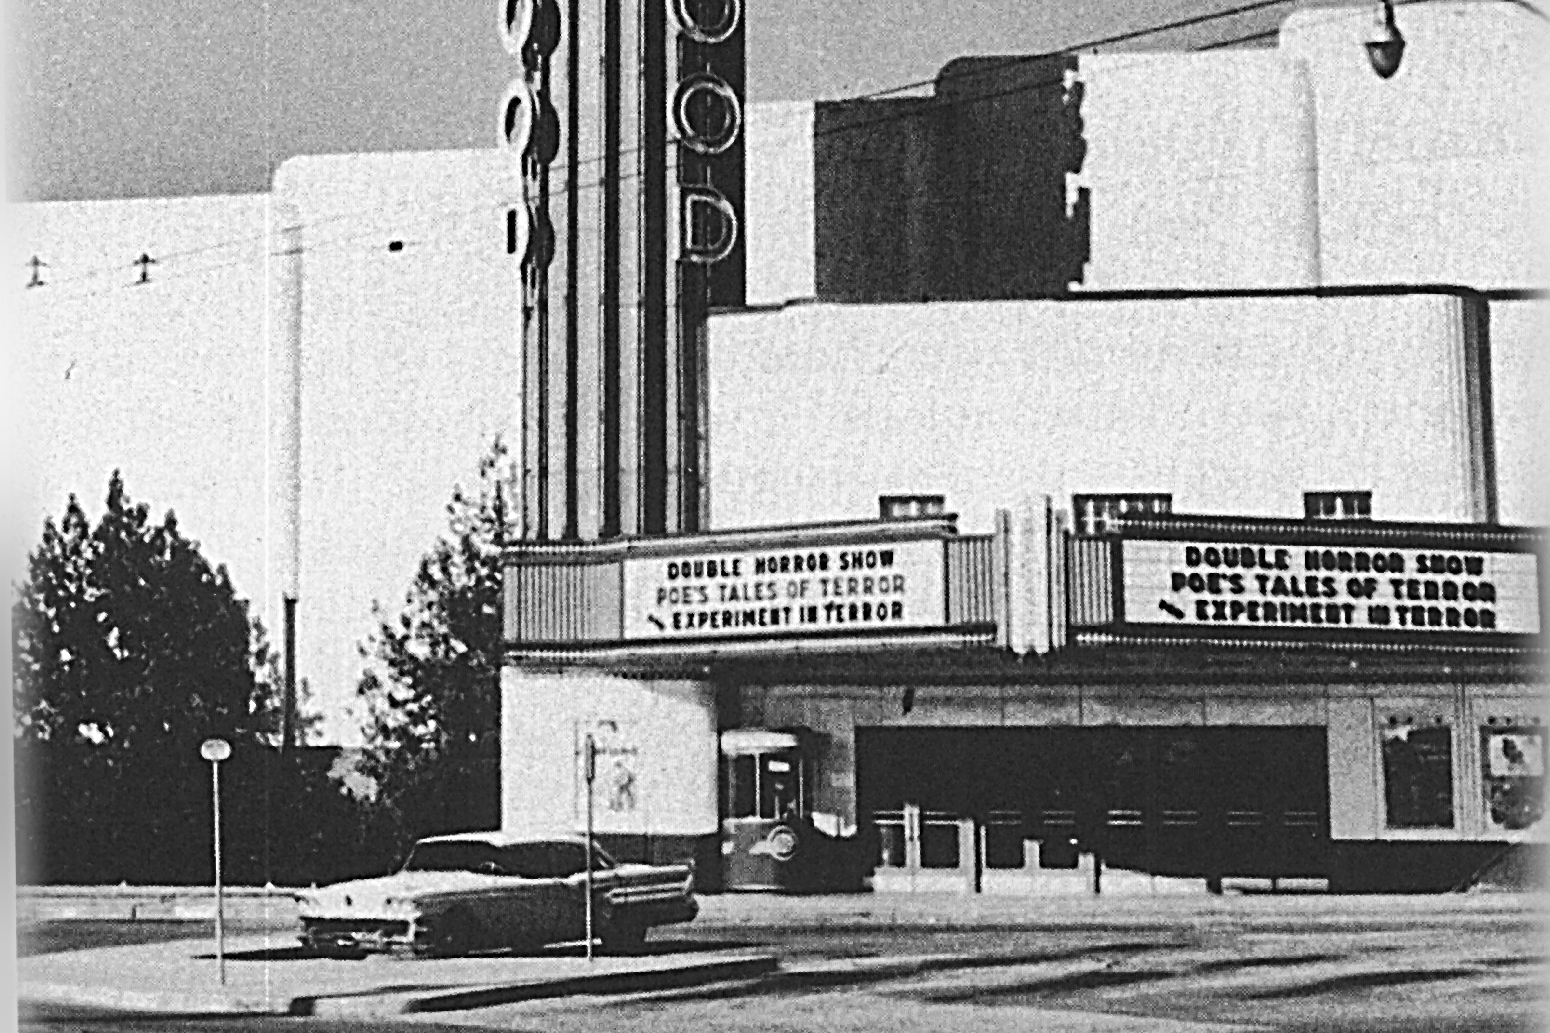 Lakewood Theater opened as a suburban movie house in 1938. The city is trying to designate it as a historic landmark, but it currently sits vacant and may not reopen as a theater.